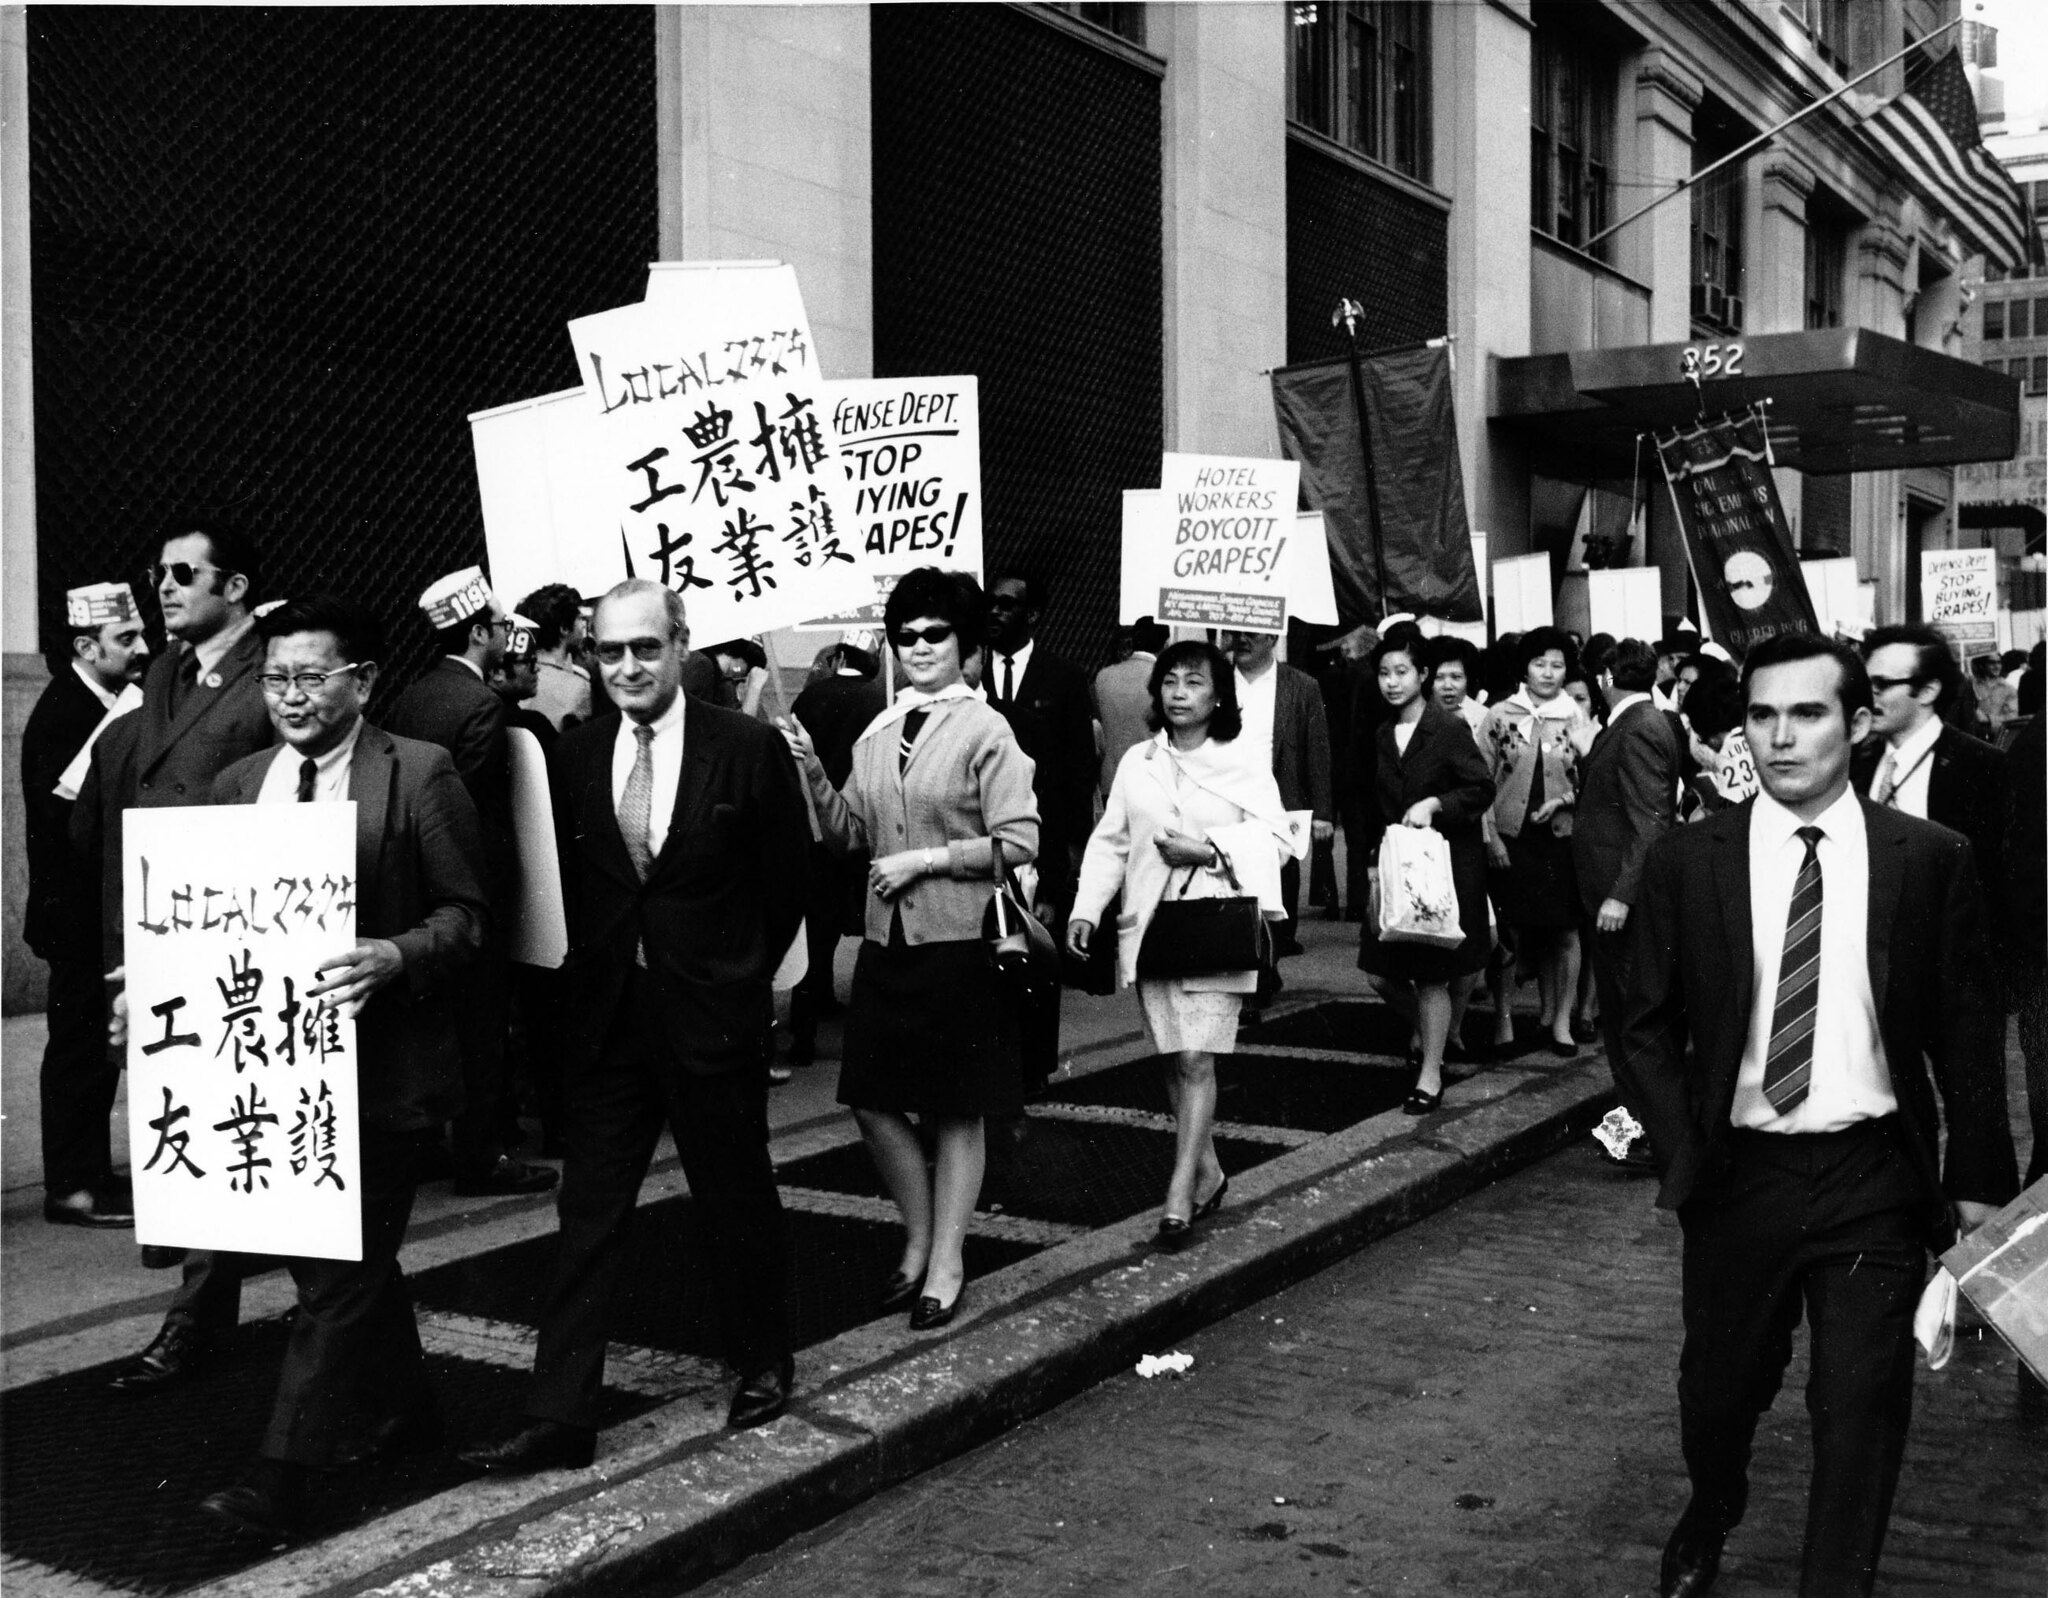 Members of ILGWU Local 2329, ILGWU Local 23-25, and SEIU Local 1199 picket for a boycott on grapes. Several Asian Americans are present with placards in Chinese.